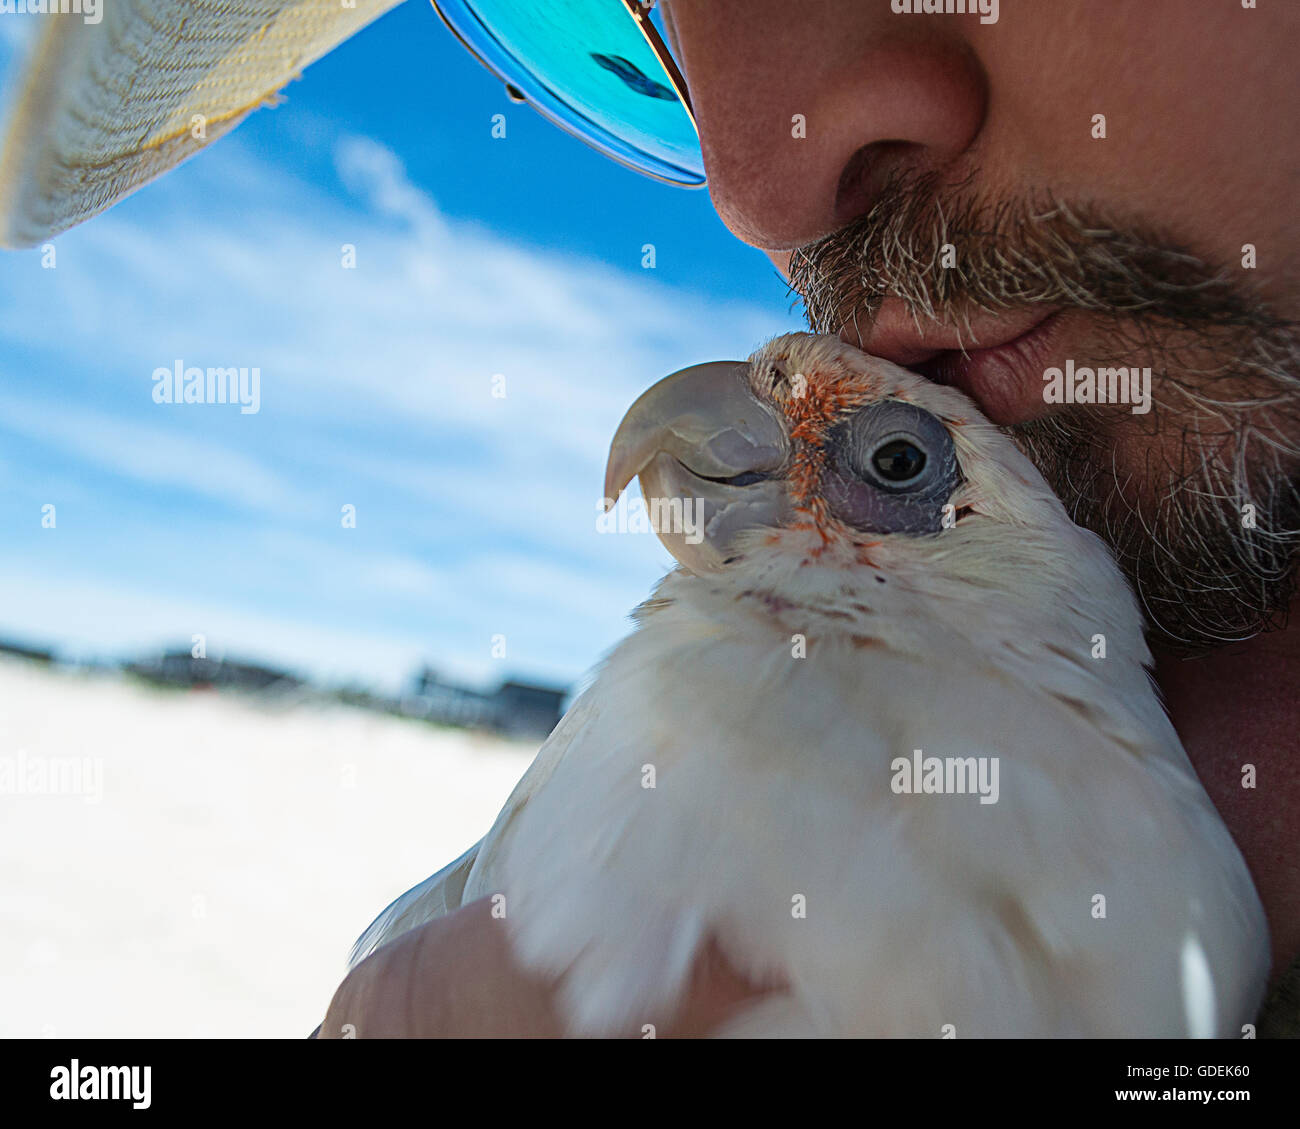 A man and his bare eyed cockatoo. - Stock Image